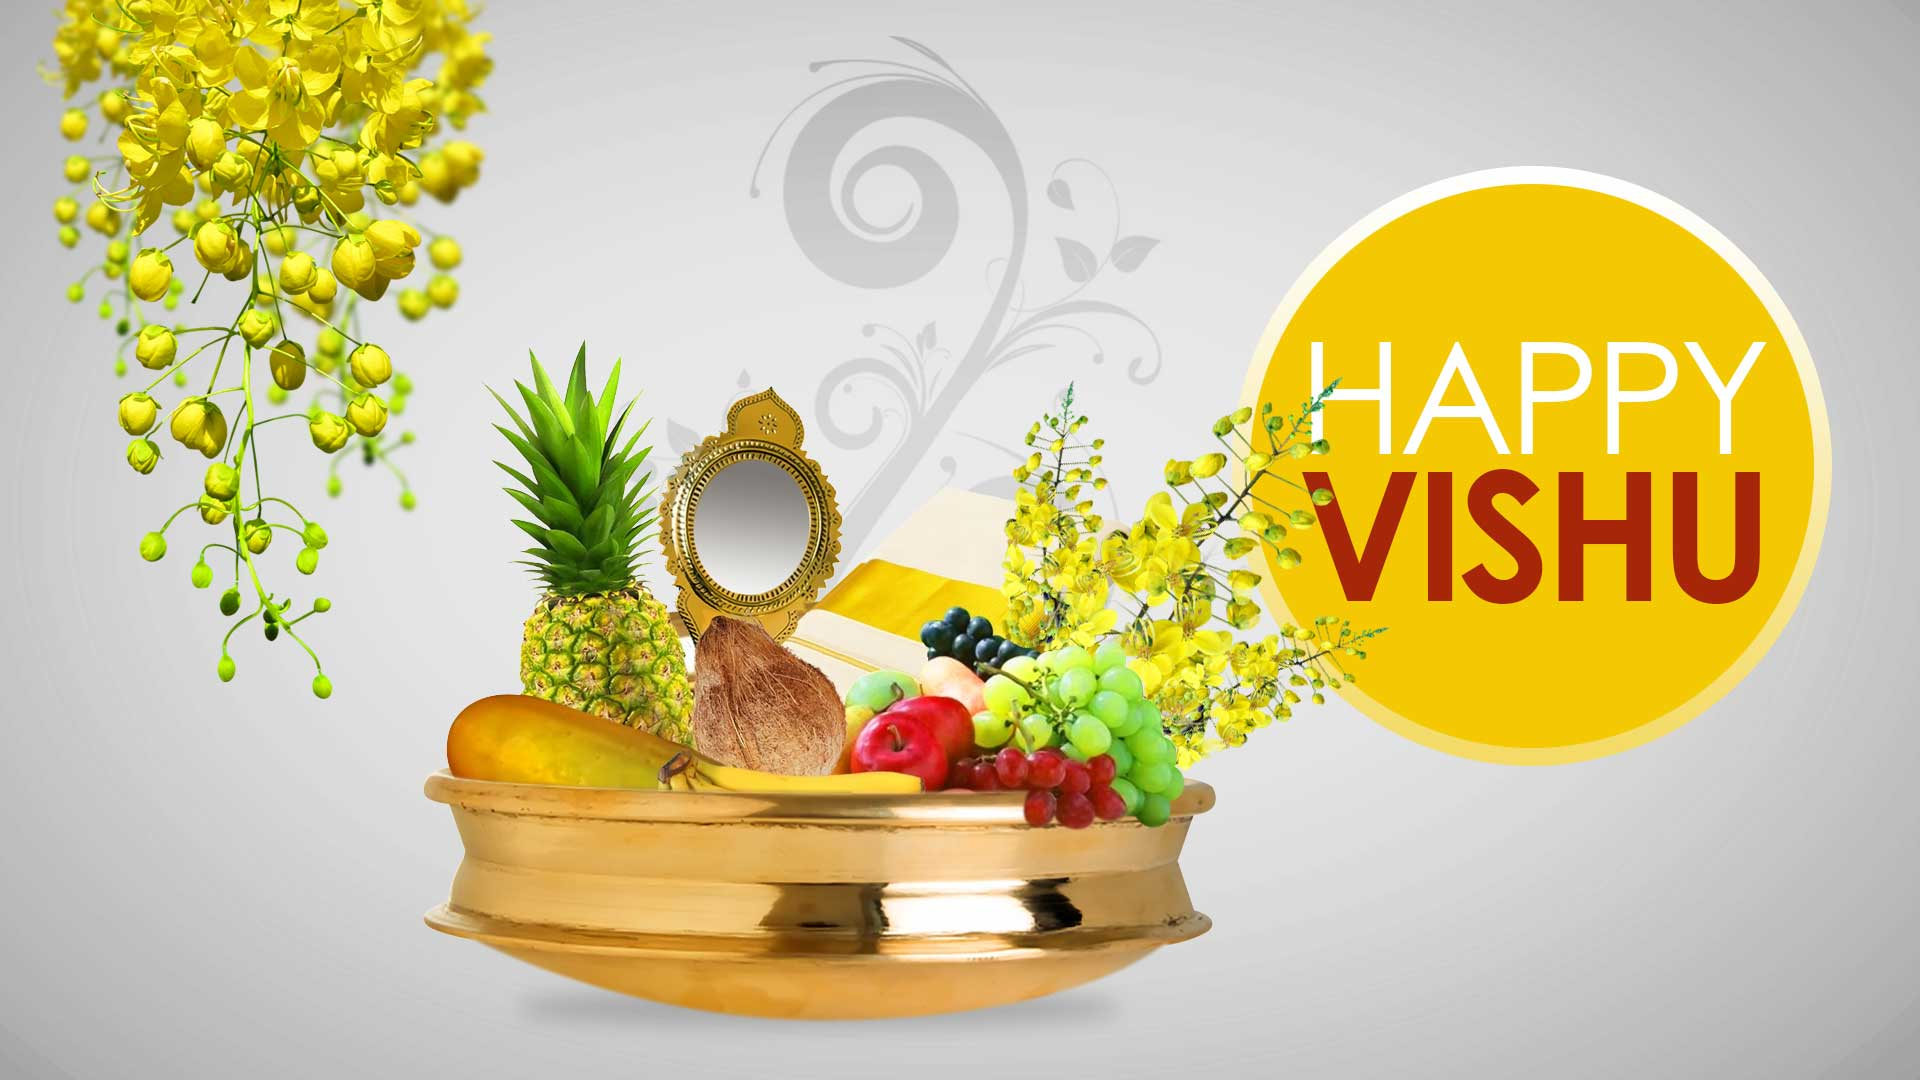 Vishu-Greetings-Vishu-Greetings-Card-Happy-Vishu.jpg